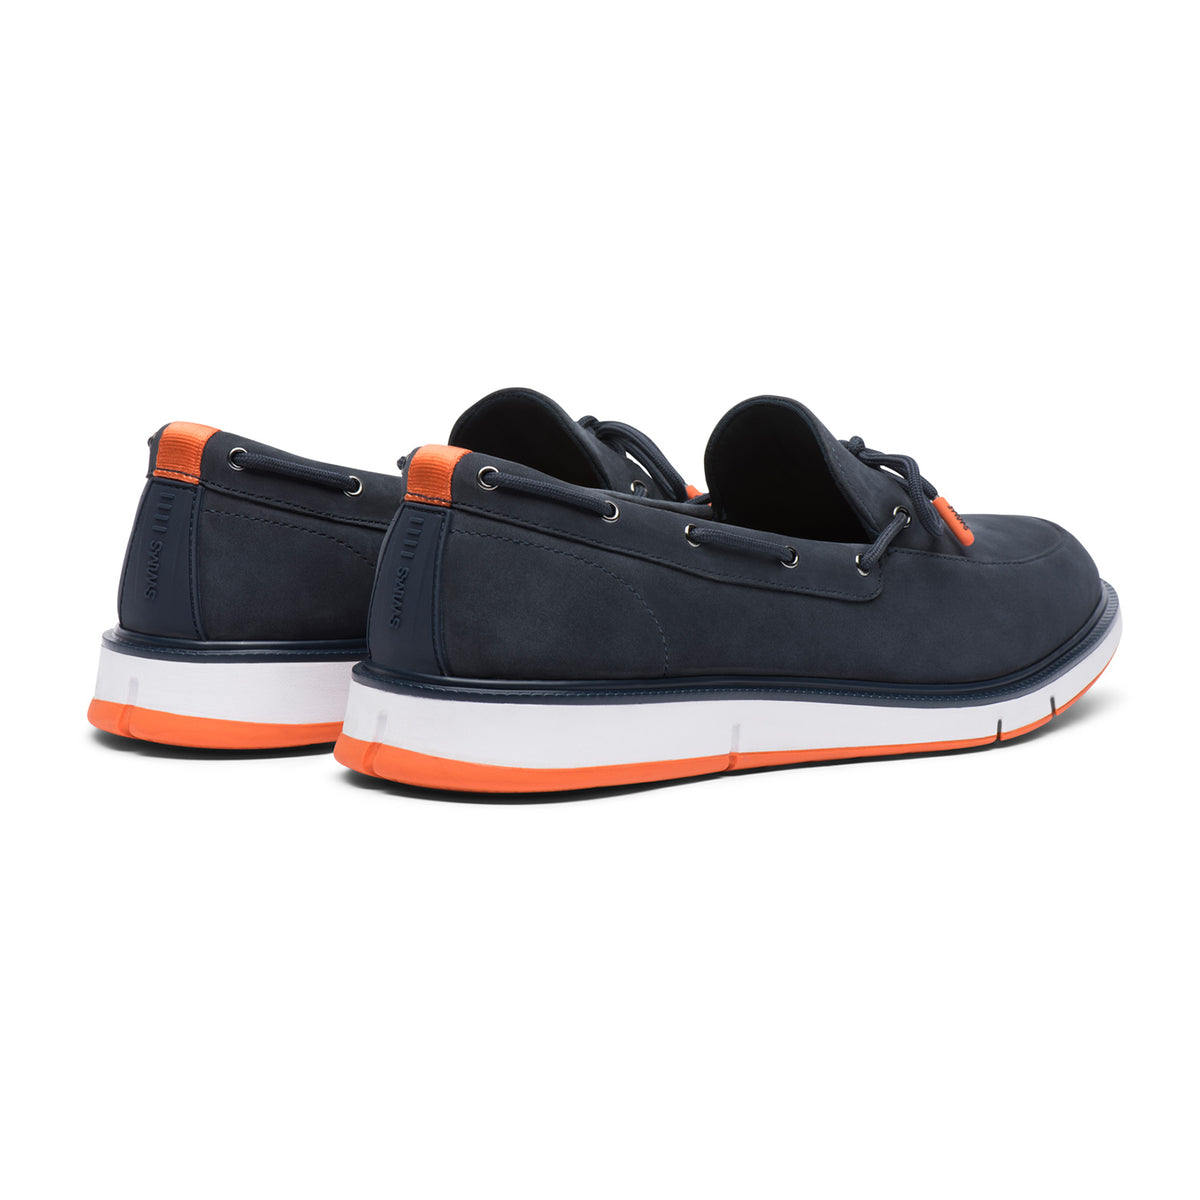 Motion Lace Loafer - background::white,variant::Navy/Orange